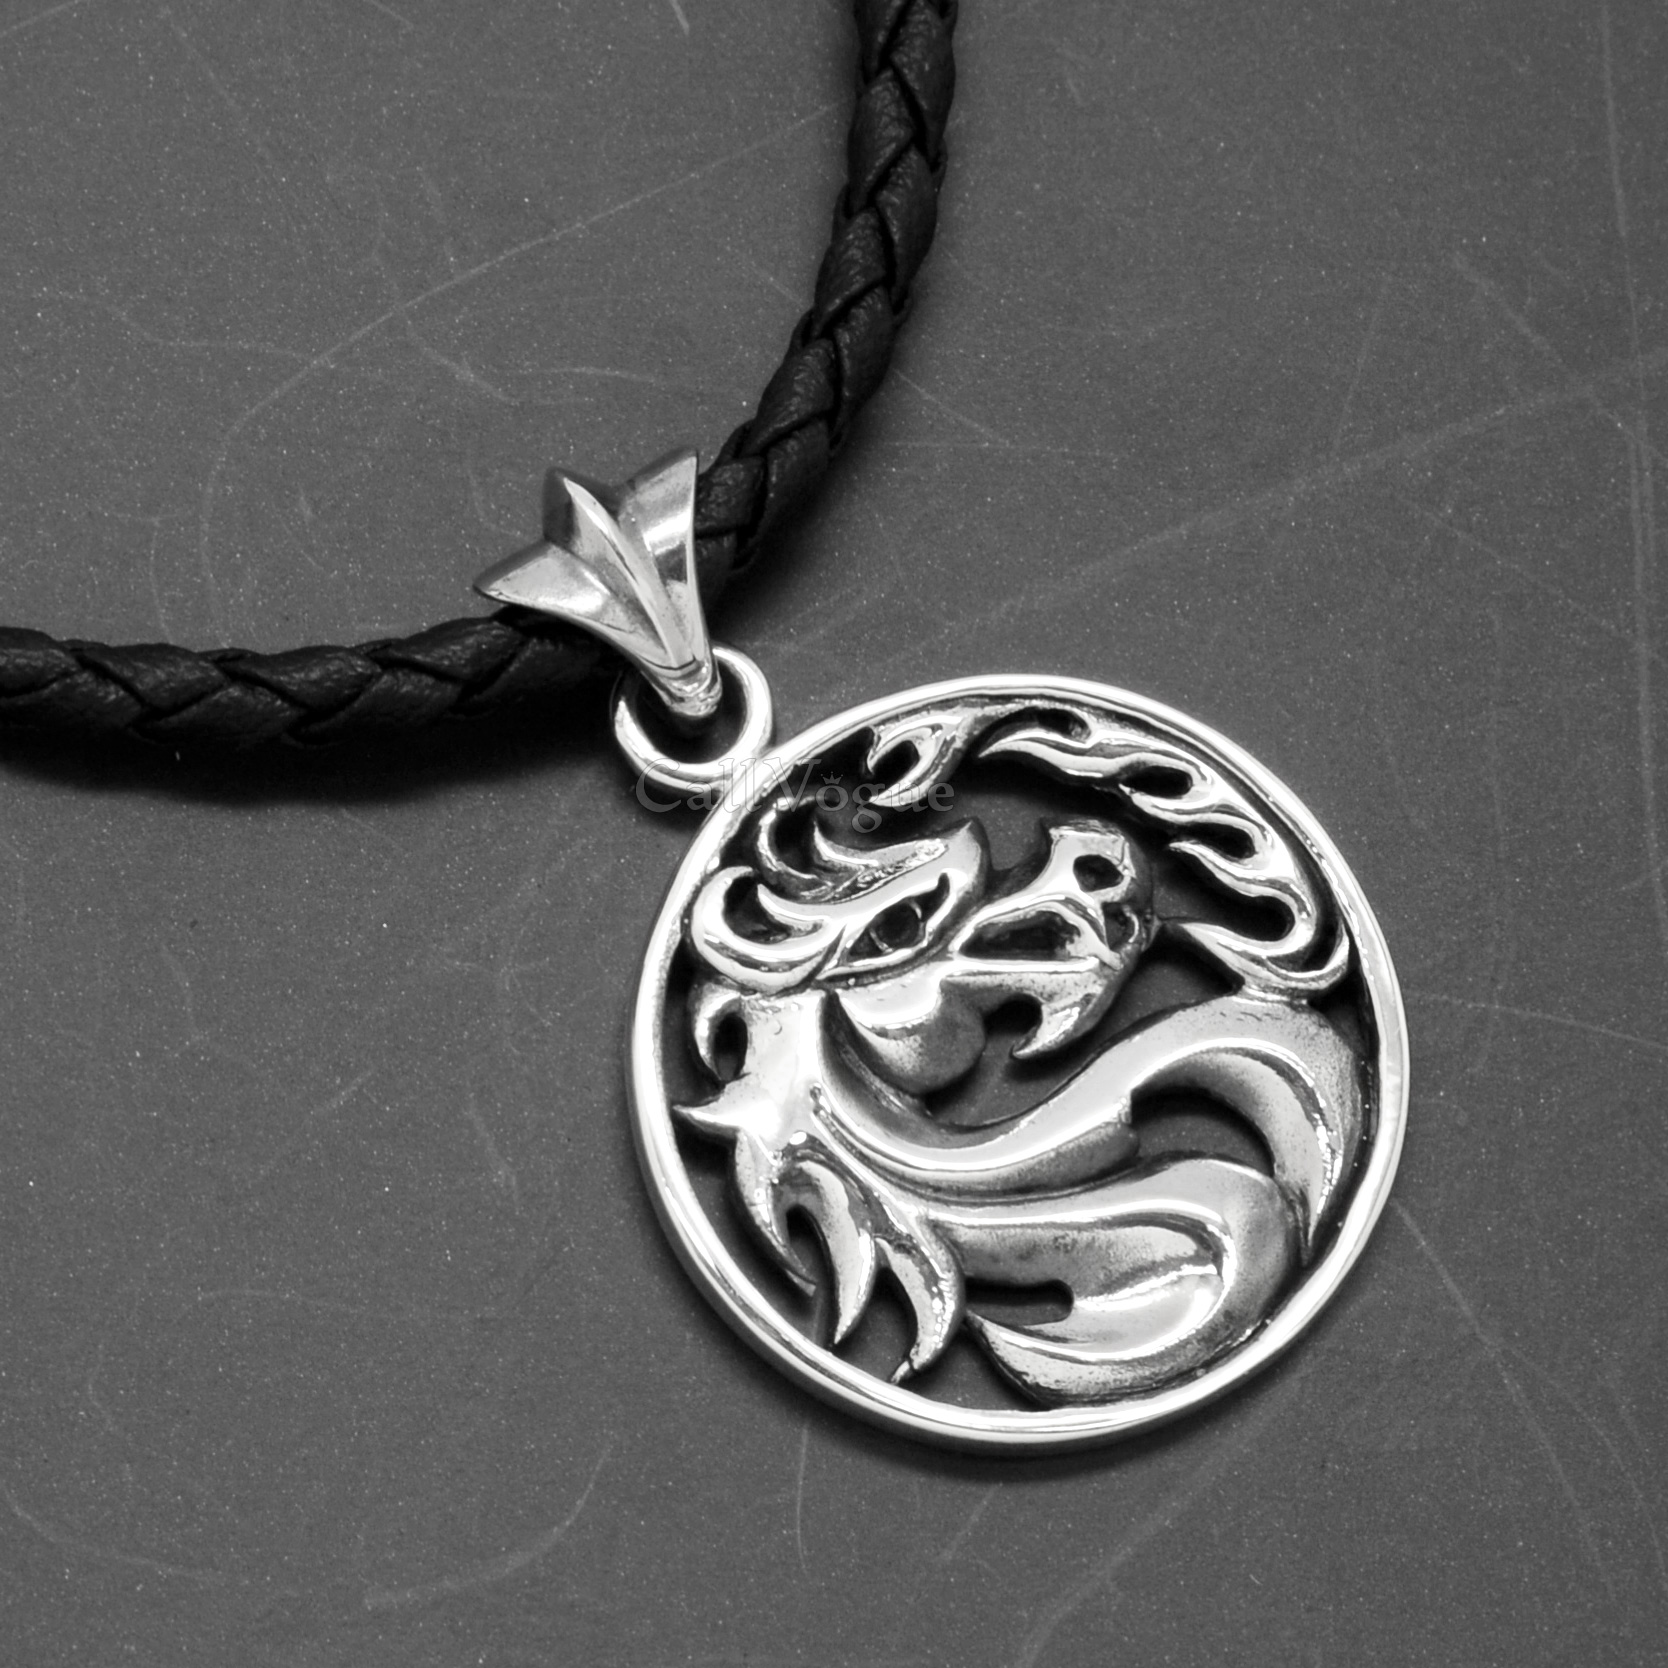 Wild horse pendant 925 sterling silver medal callvogue wild horse pendant 925 sterling silver medal mozeypictures Gallery